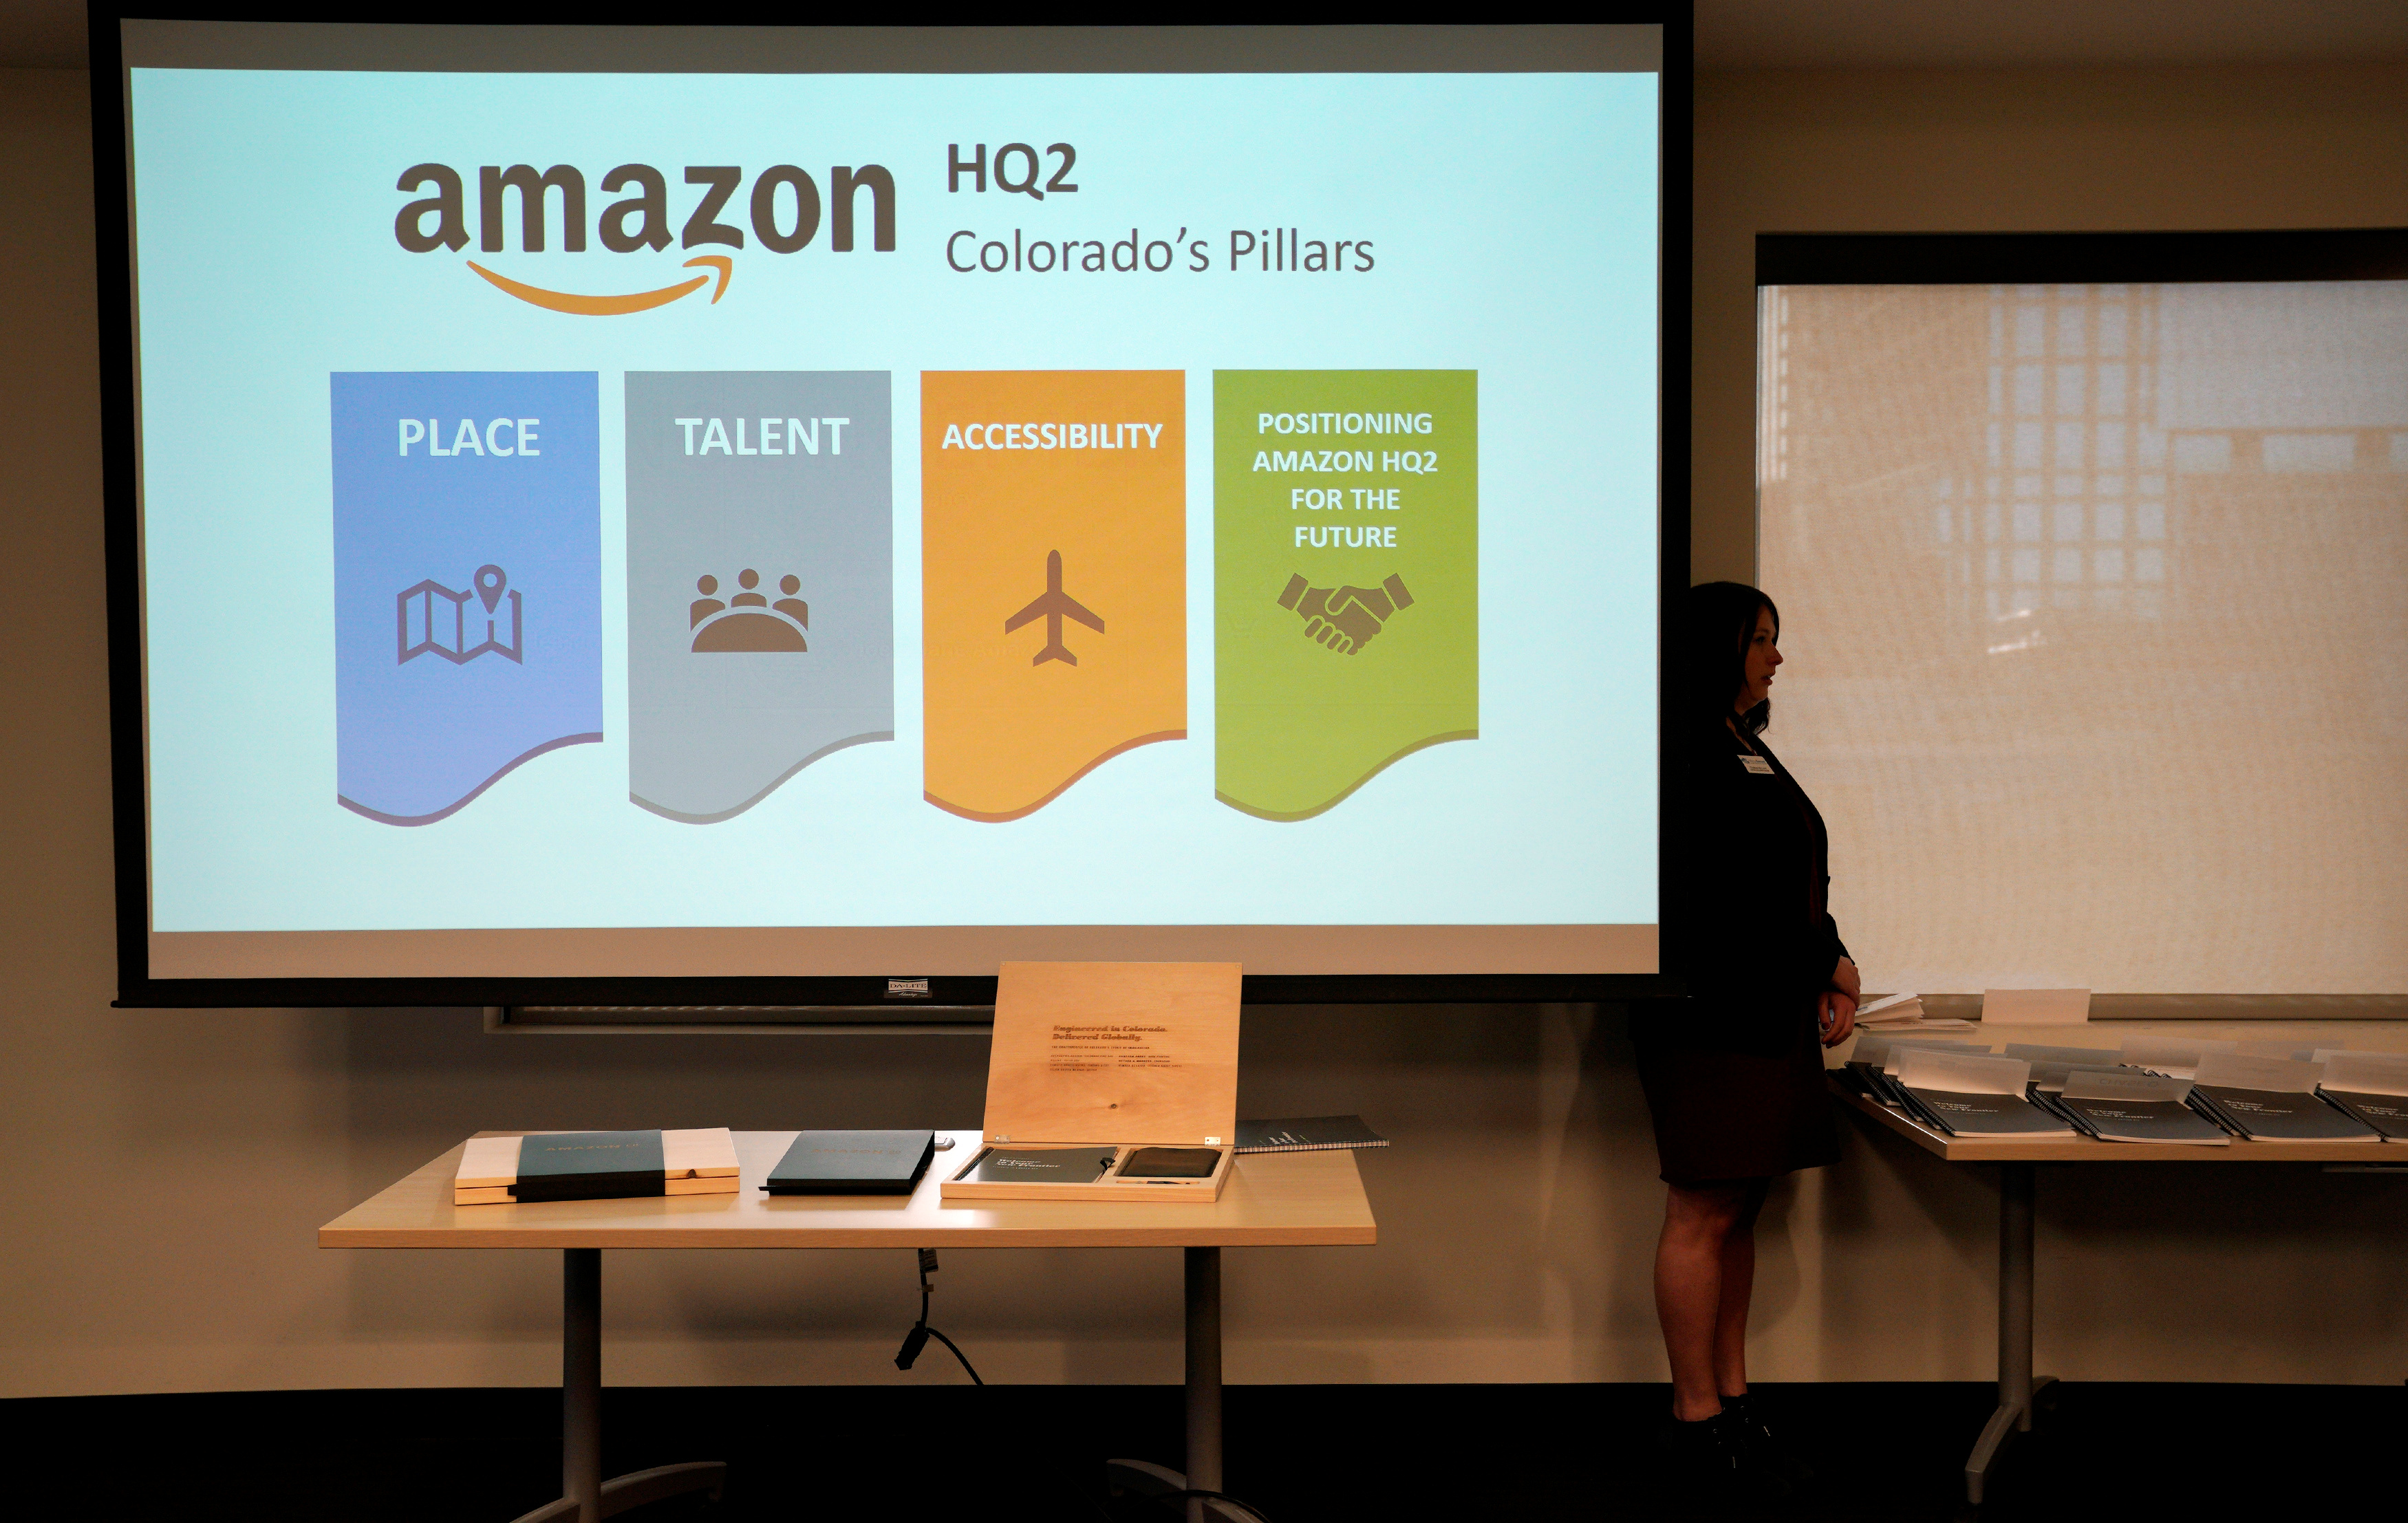 The Colorado proposal for the Amazon.com Inc's $5 billion second headquarters is unveiled at a meeting in Denver, Colorado, U.S. on November 16, 2017. REUTERS/Rick Wilking - RC14ED43B360